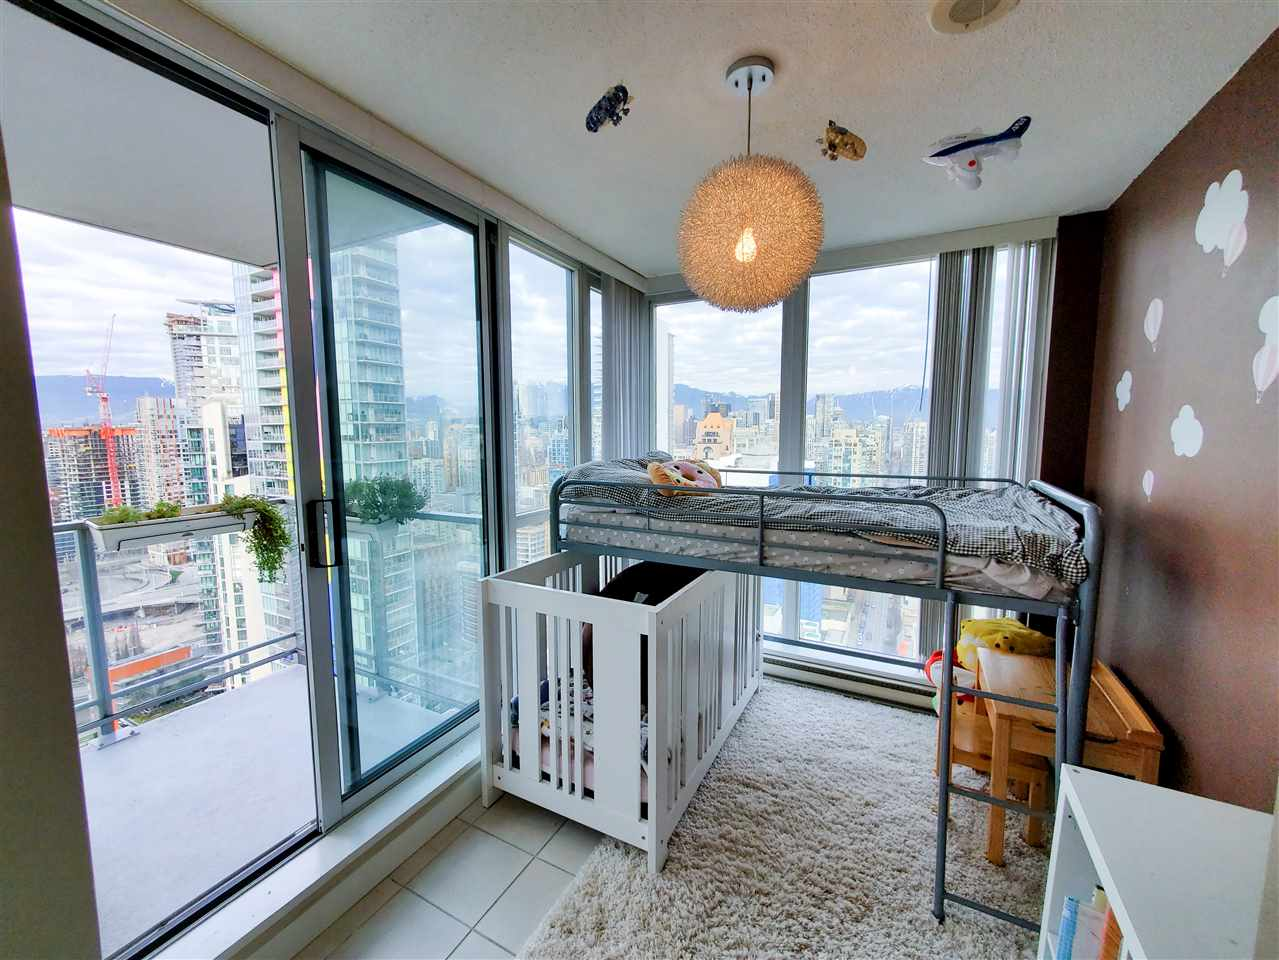 4006 1408 STRATHMORE MEWS - Yaletown Apartment/Condo for sale, 1 Bedroom (R2528590) - #7